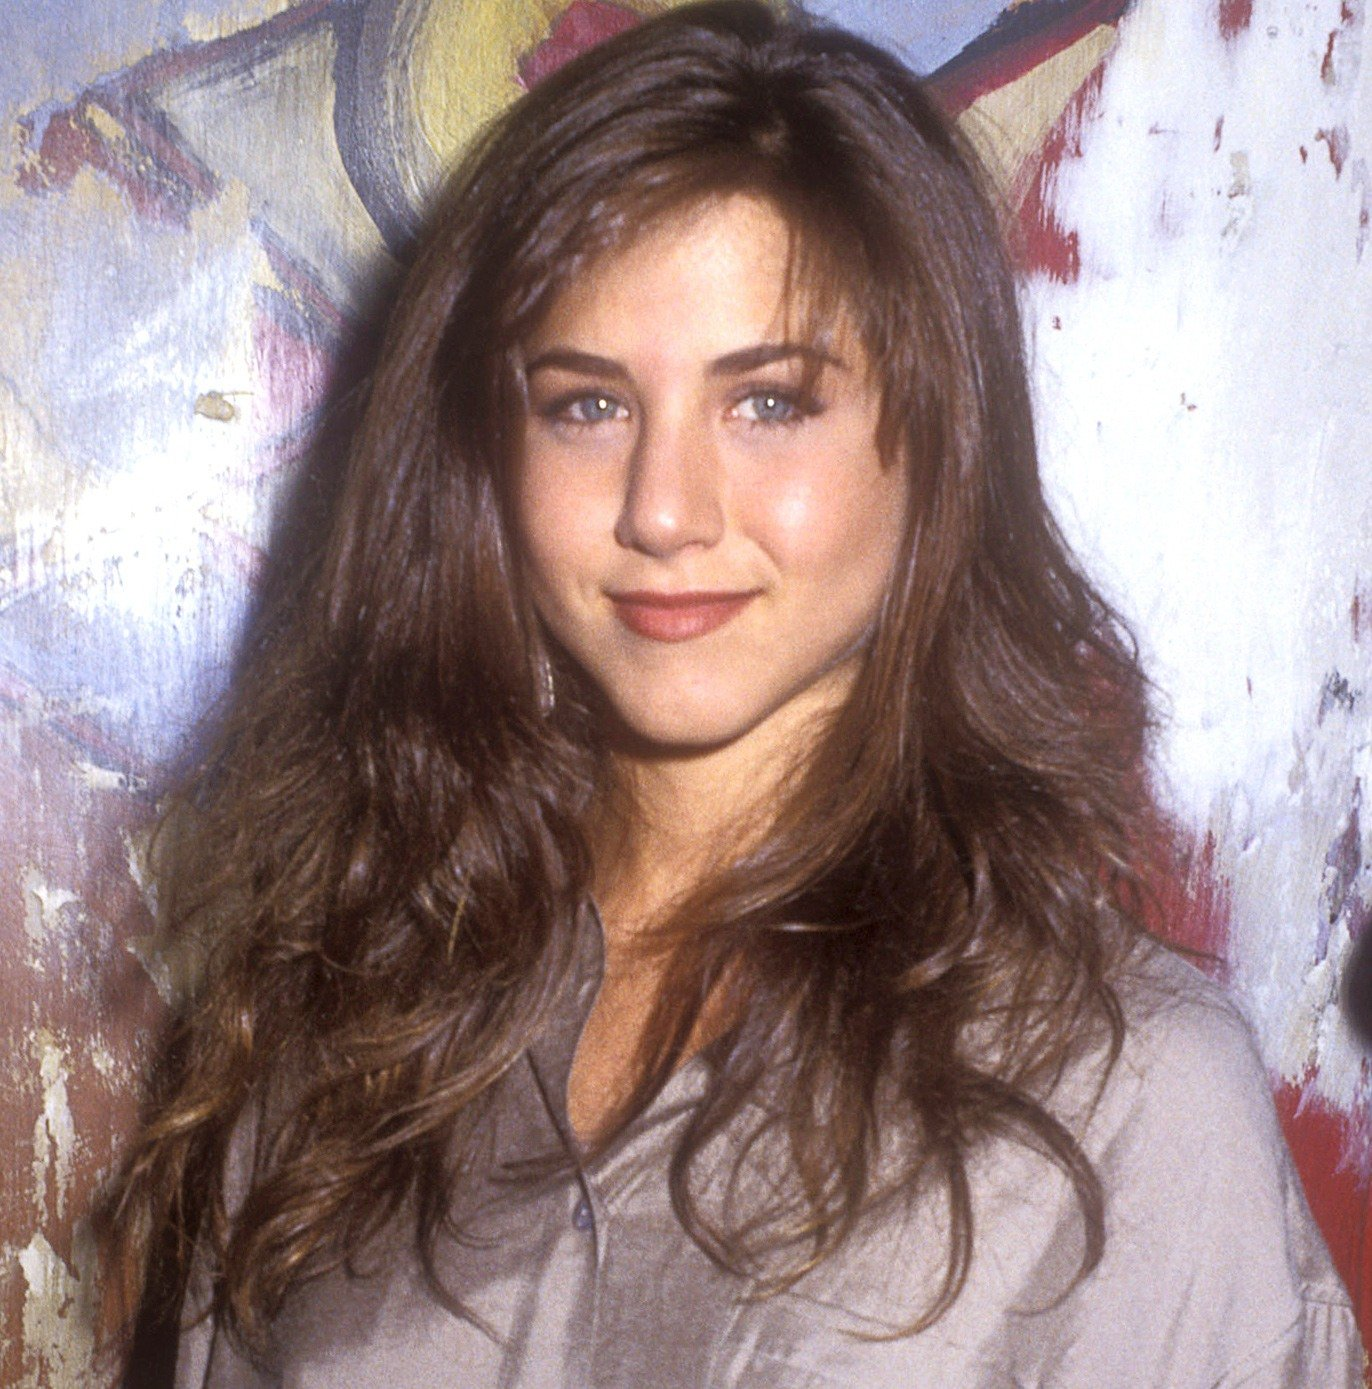 111111 20 Things You Never Knew About Jennifer Aniston